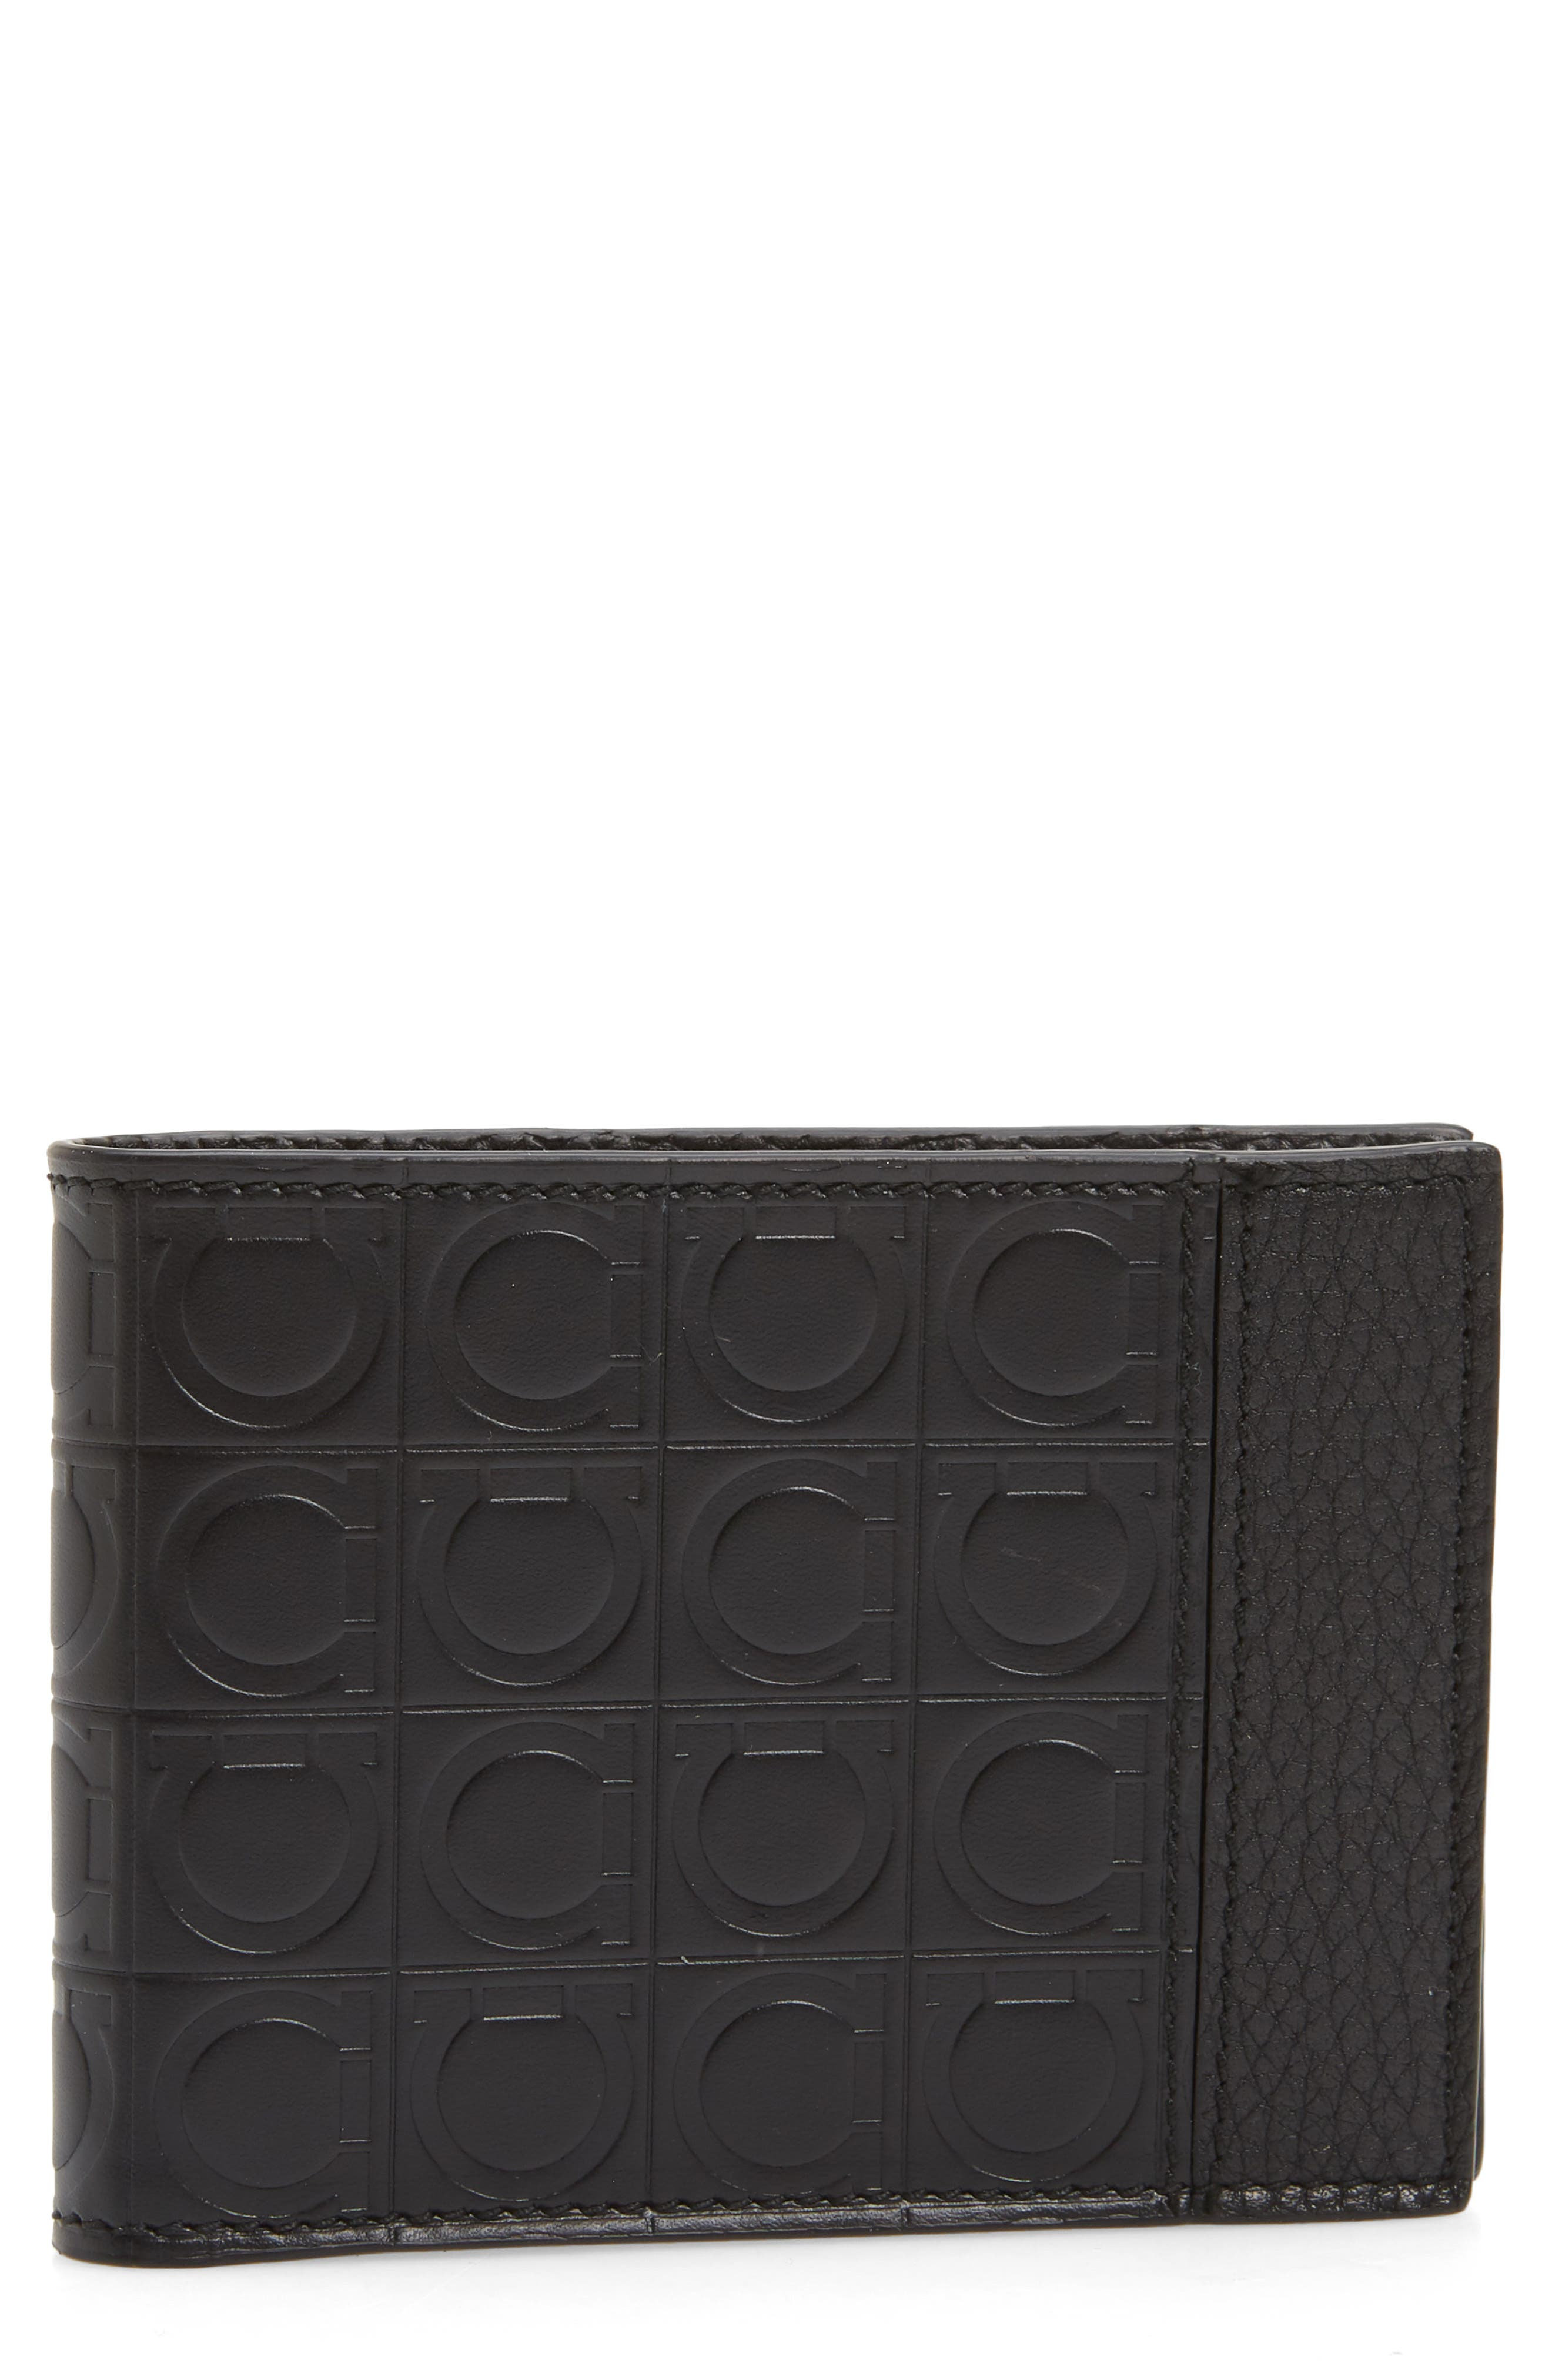 Firenze Gamma Leather Wallet,                         Main,                         color, Black